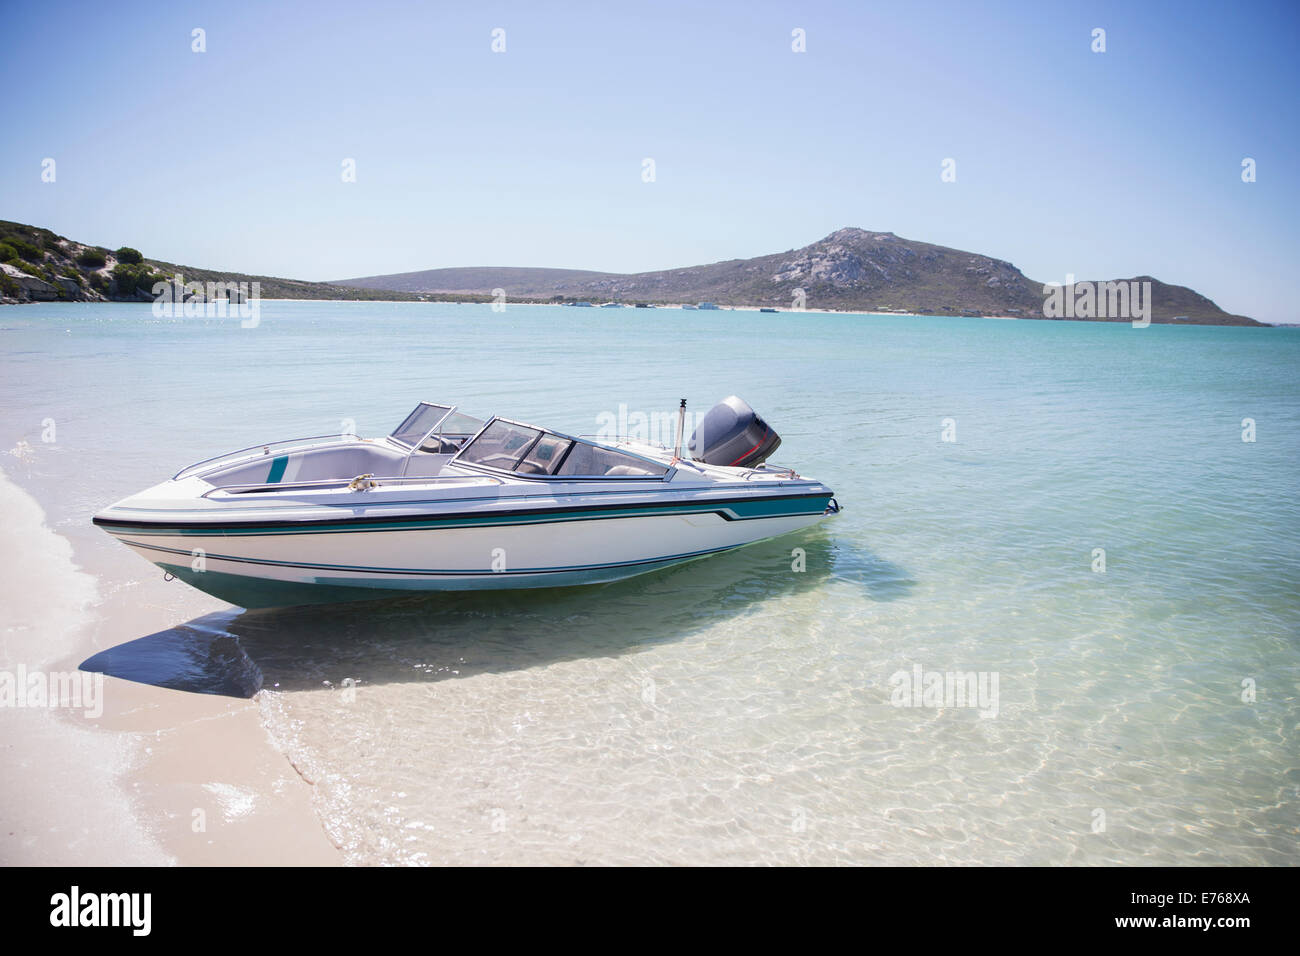 Speedboat beached on shore - Stock Image